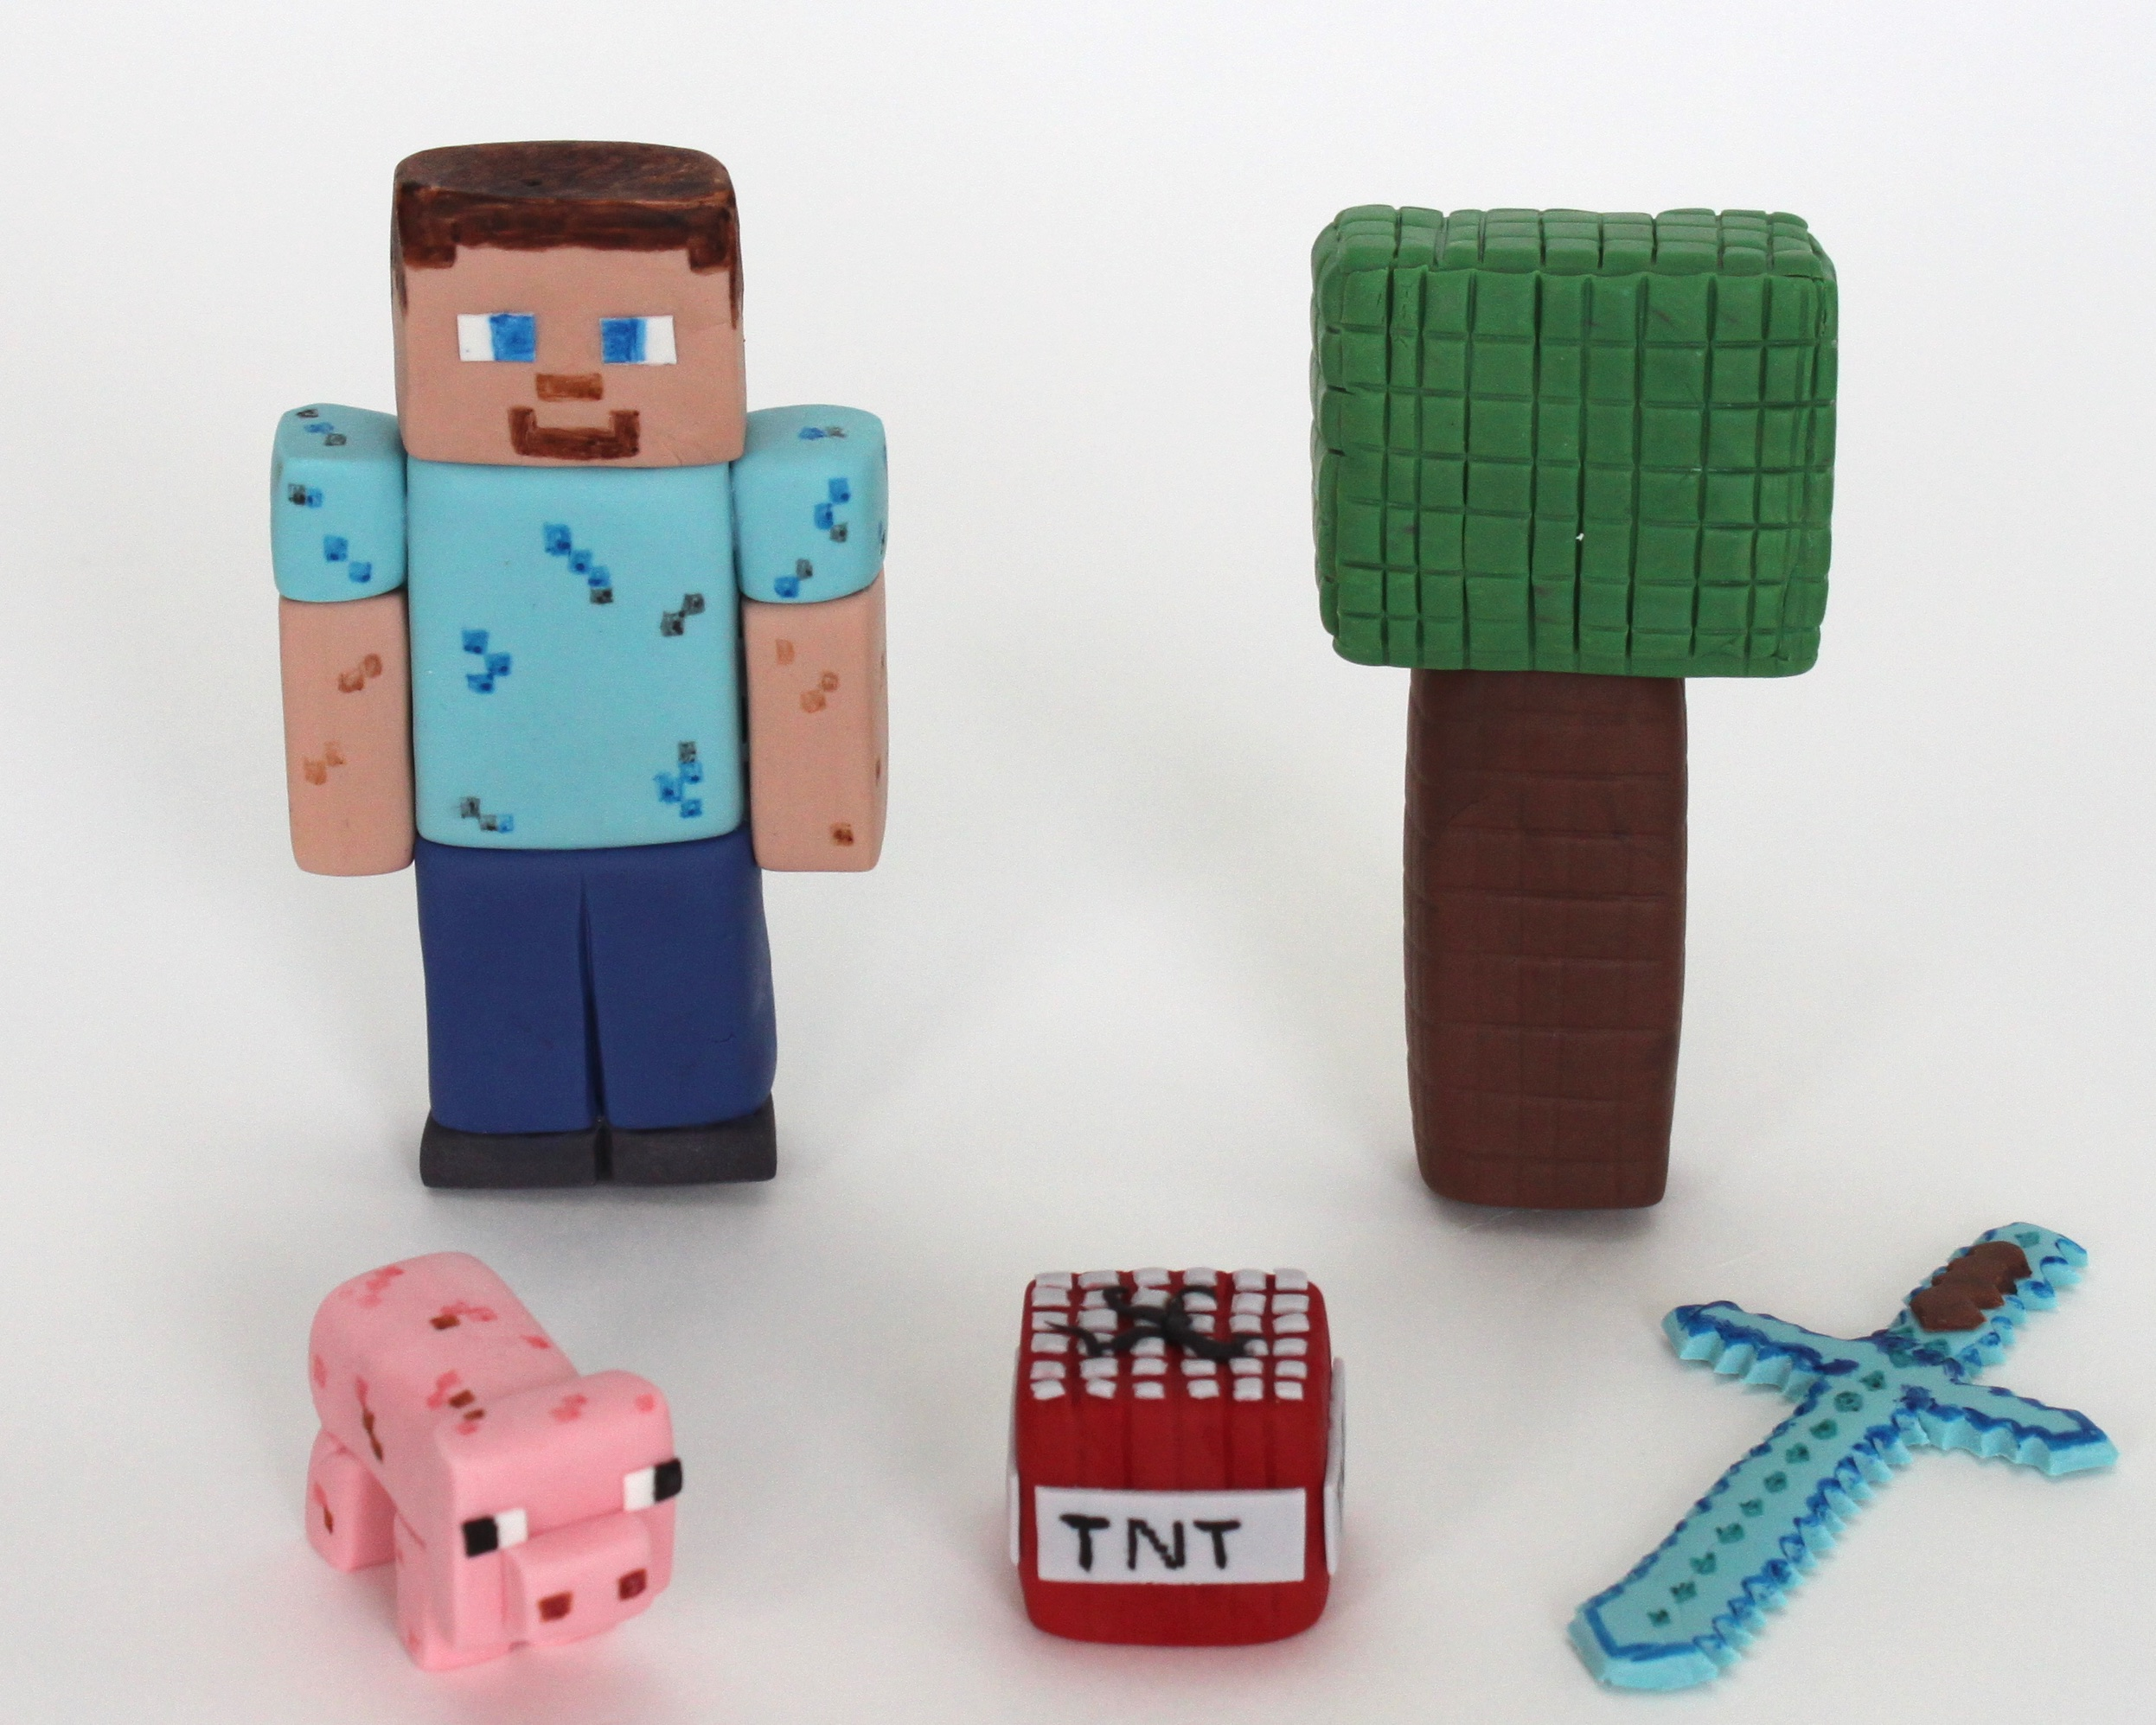 minecraft toppers 10 nwm.jpg